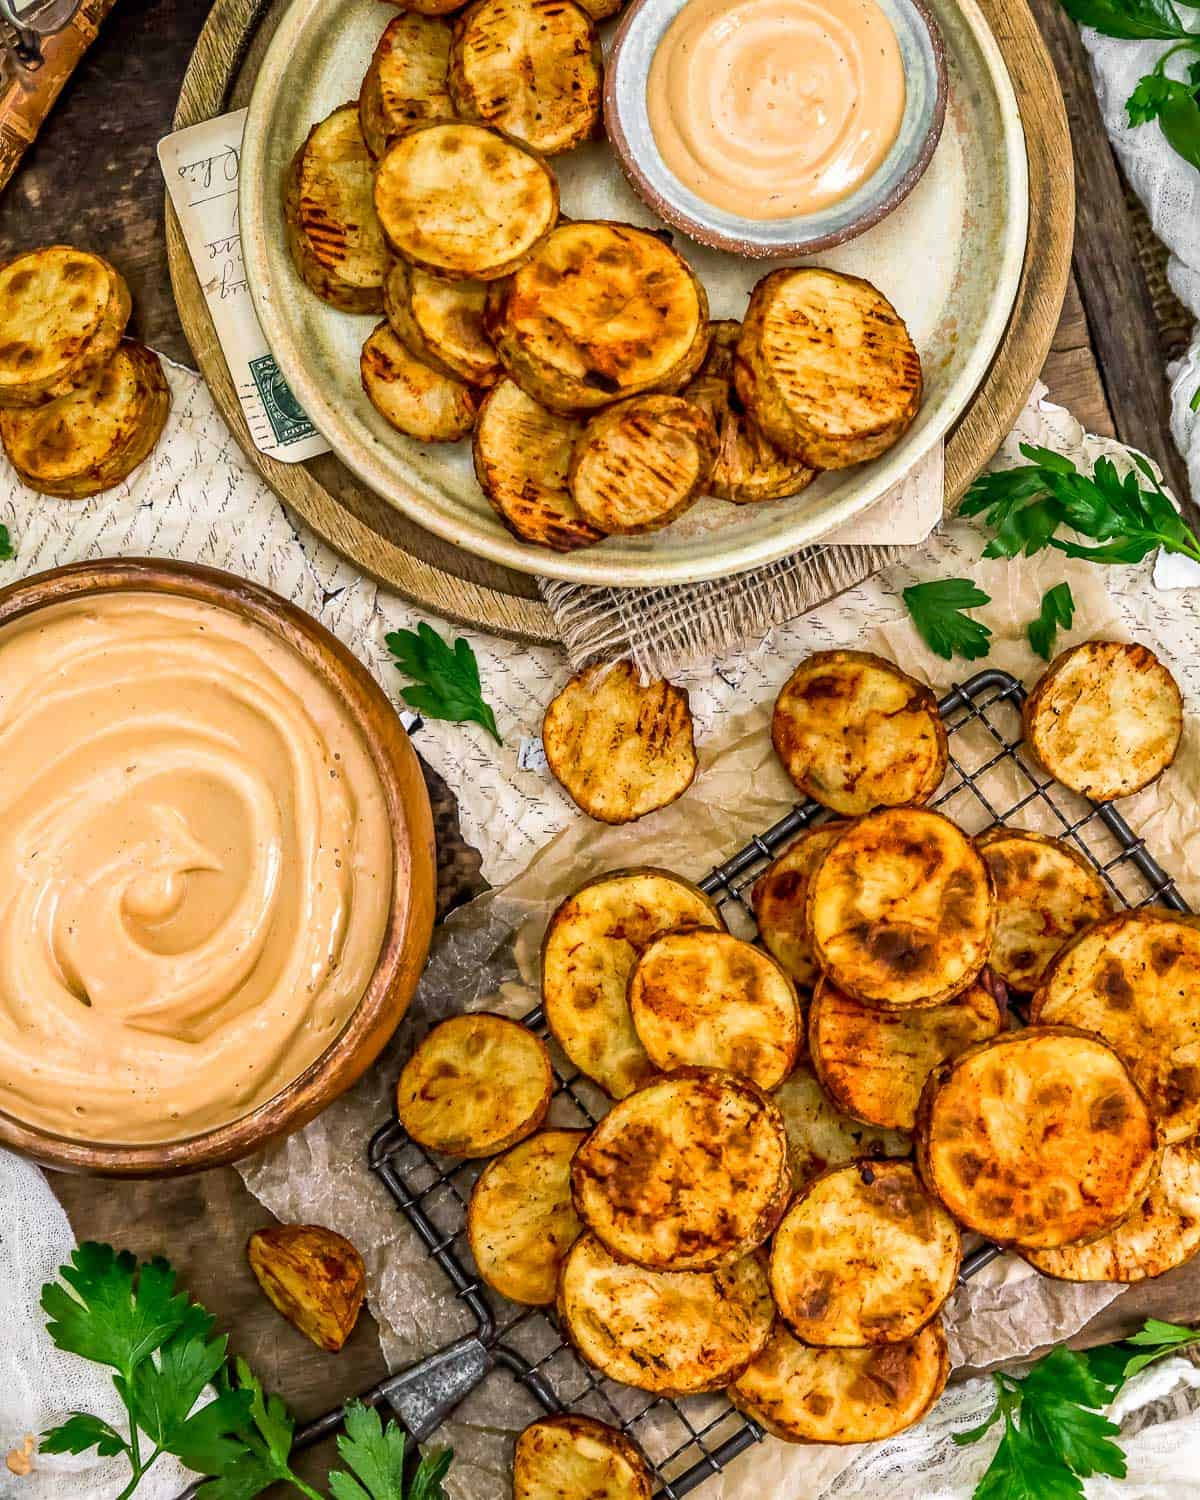 Tablescape of Oil-Free Baked Potato Slices